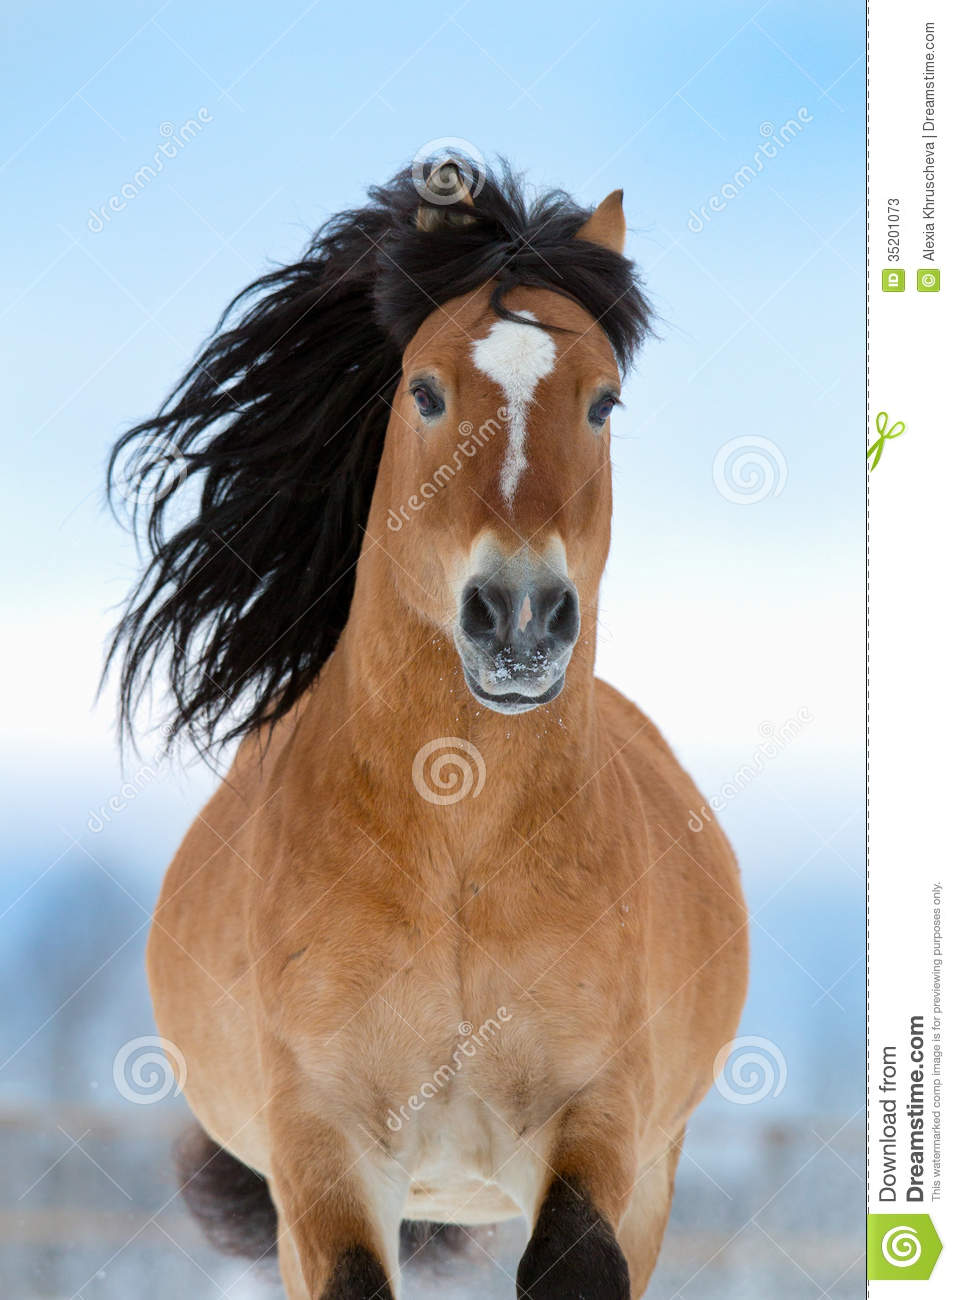 Horse Gallops In Winter, Front View. Stock Photos - Image: 35201073